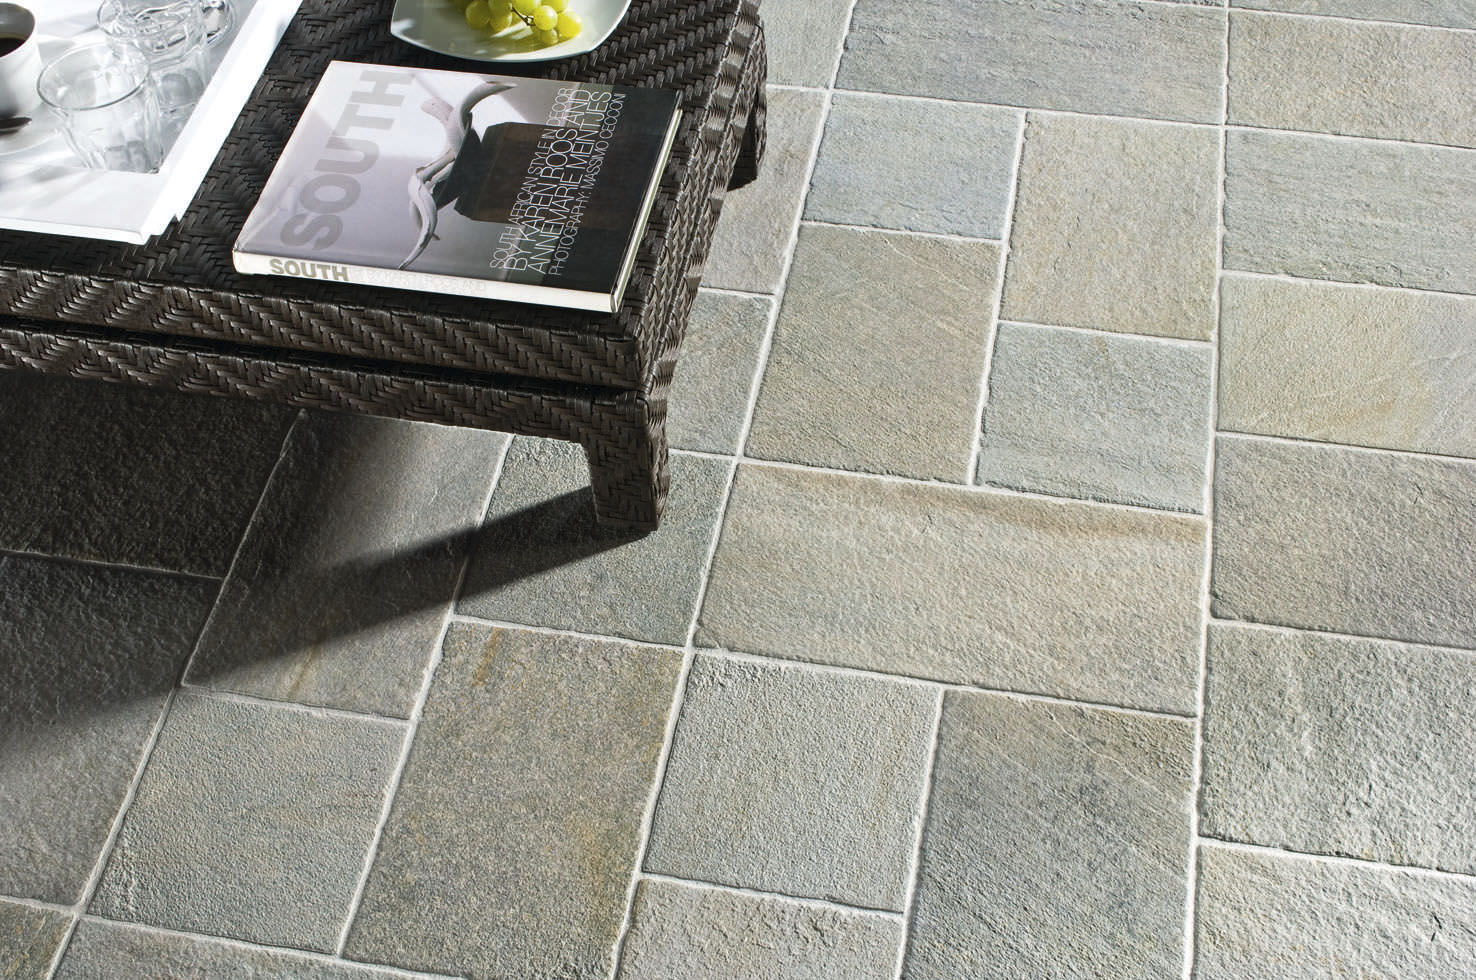 Indoor tile outdoor for floors porcelain stoneware bioarch indoor tile outdoor for floors porcelain stoneware bioarch barge grigia dailygadgetfo Image collections